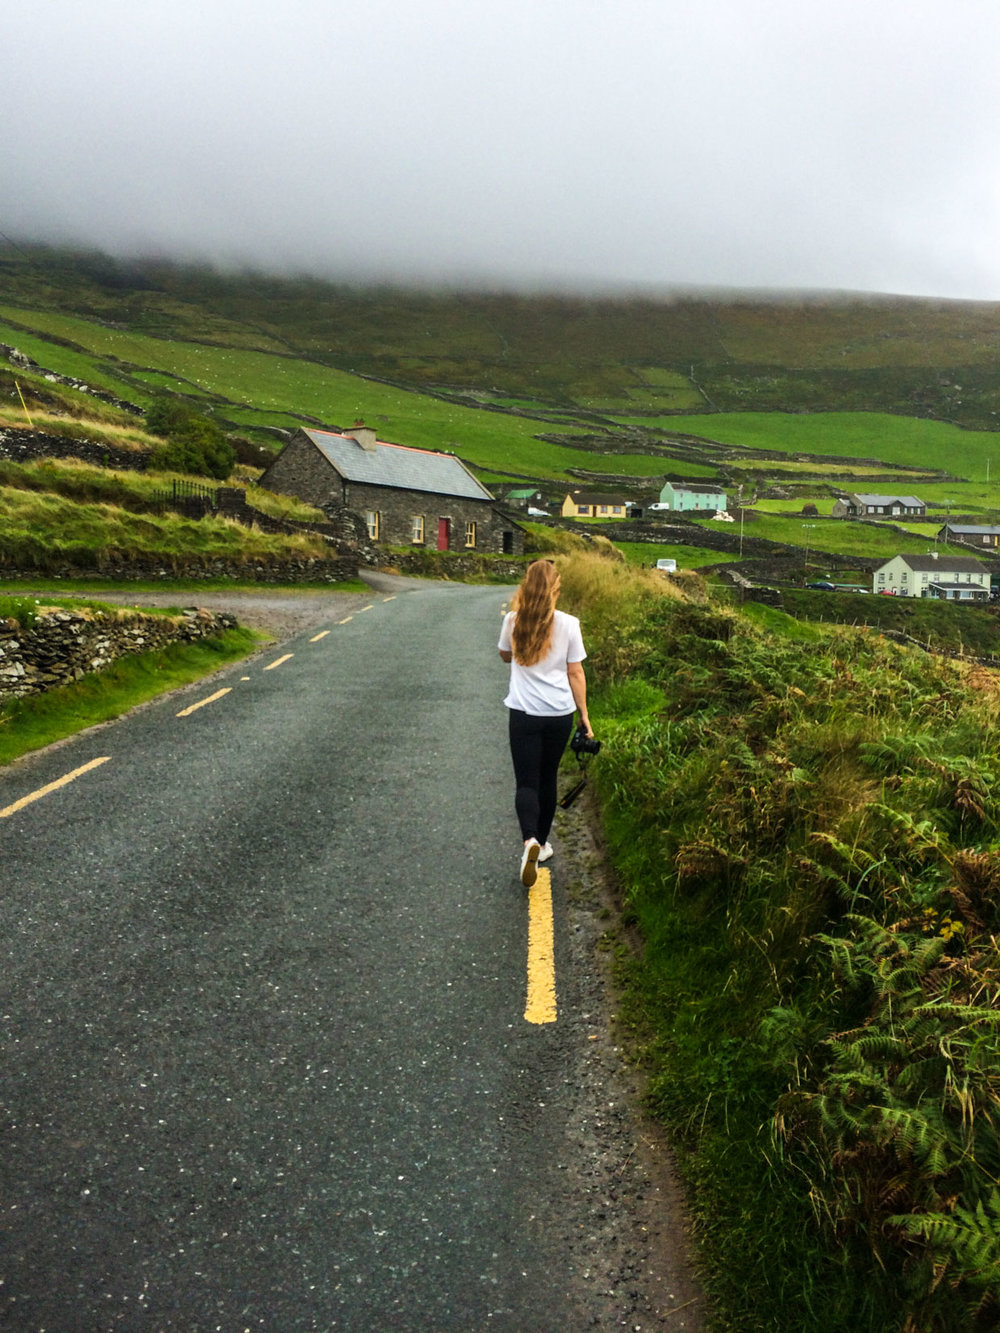 Female photographer exploring from Killarney to Dingle, County Kerry, Ireland.